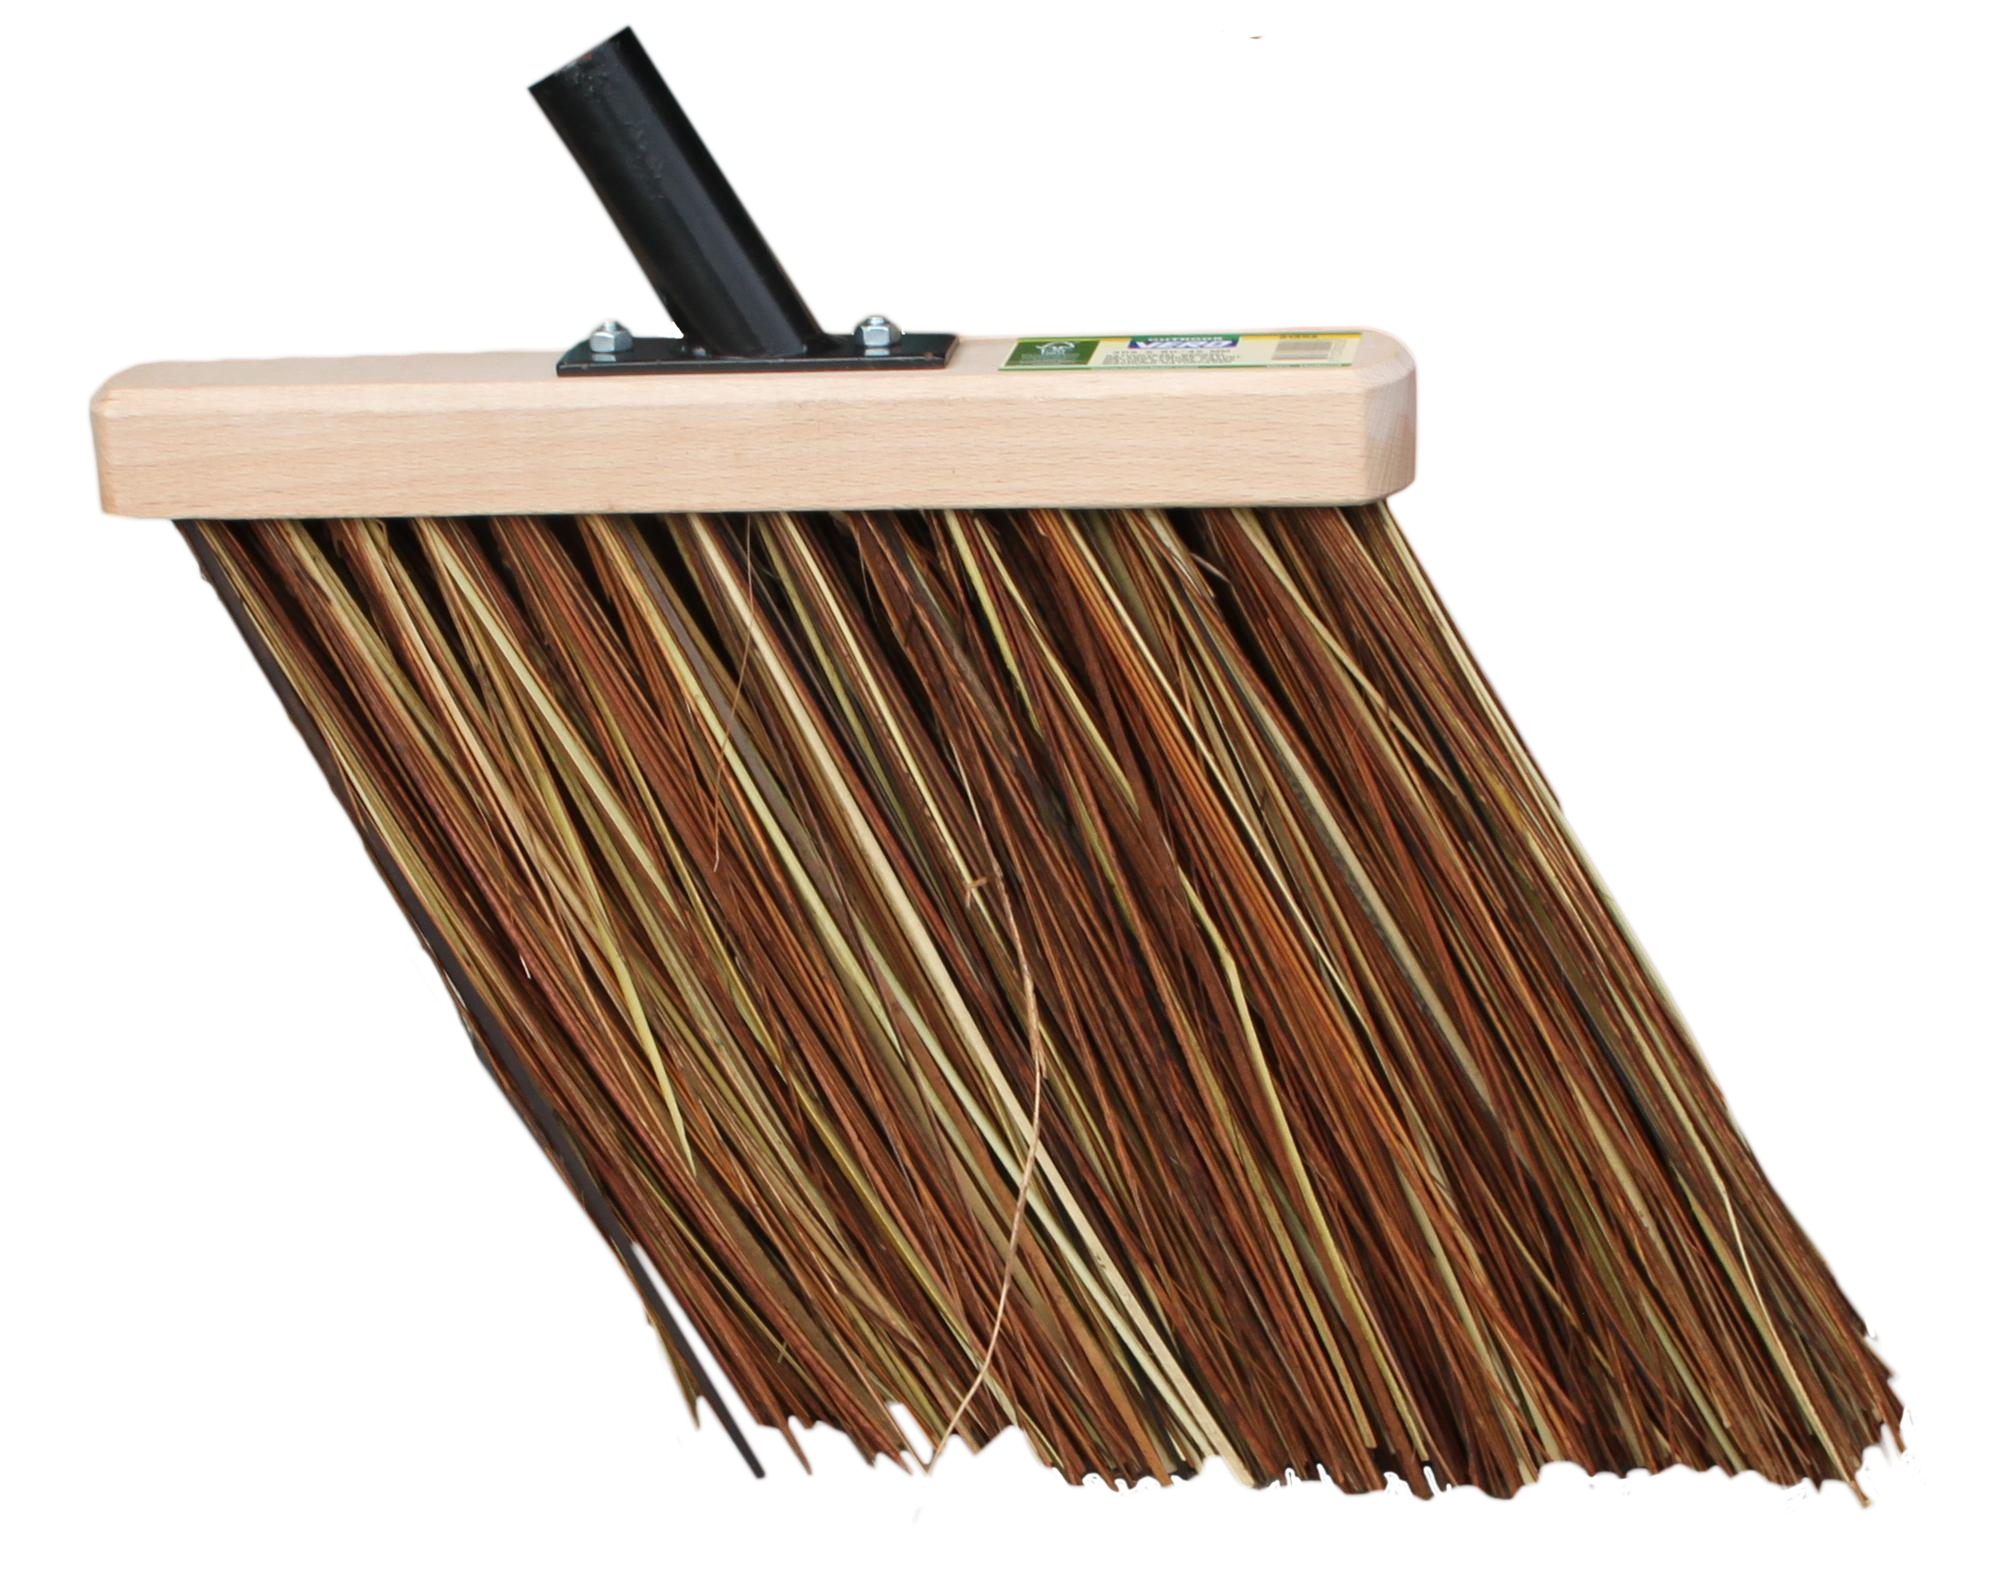 Discover our complete range of brooms to sweep your house, barn, stables or animal abodes!